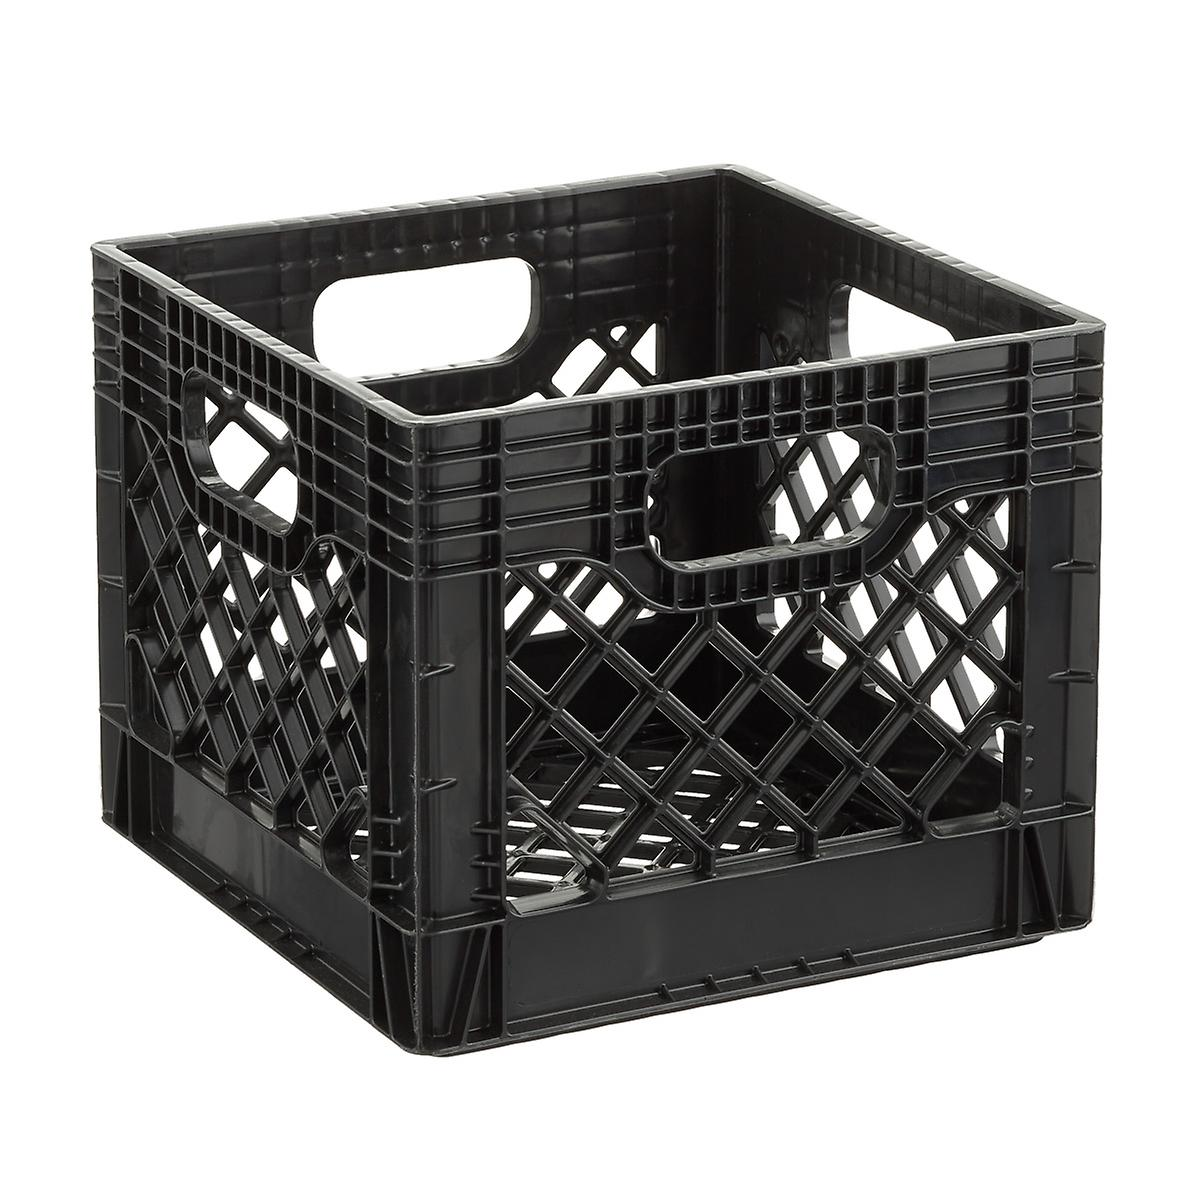 Black Authentic Milk Crate